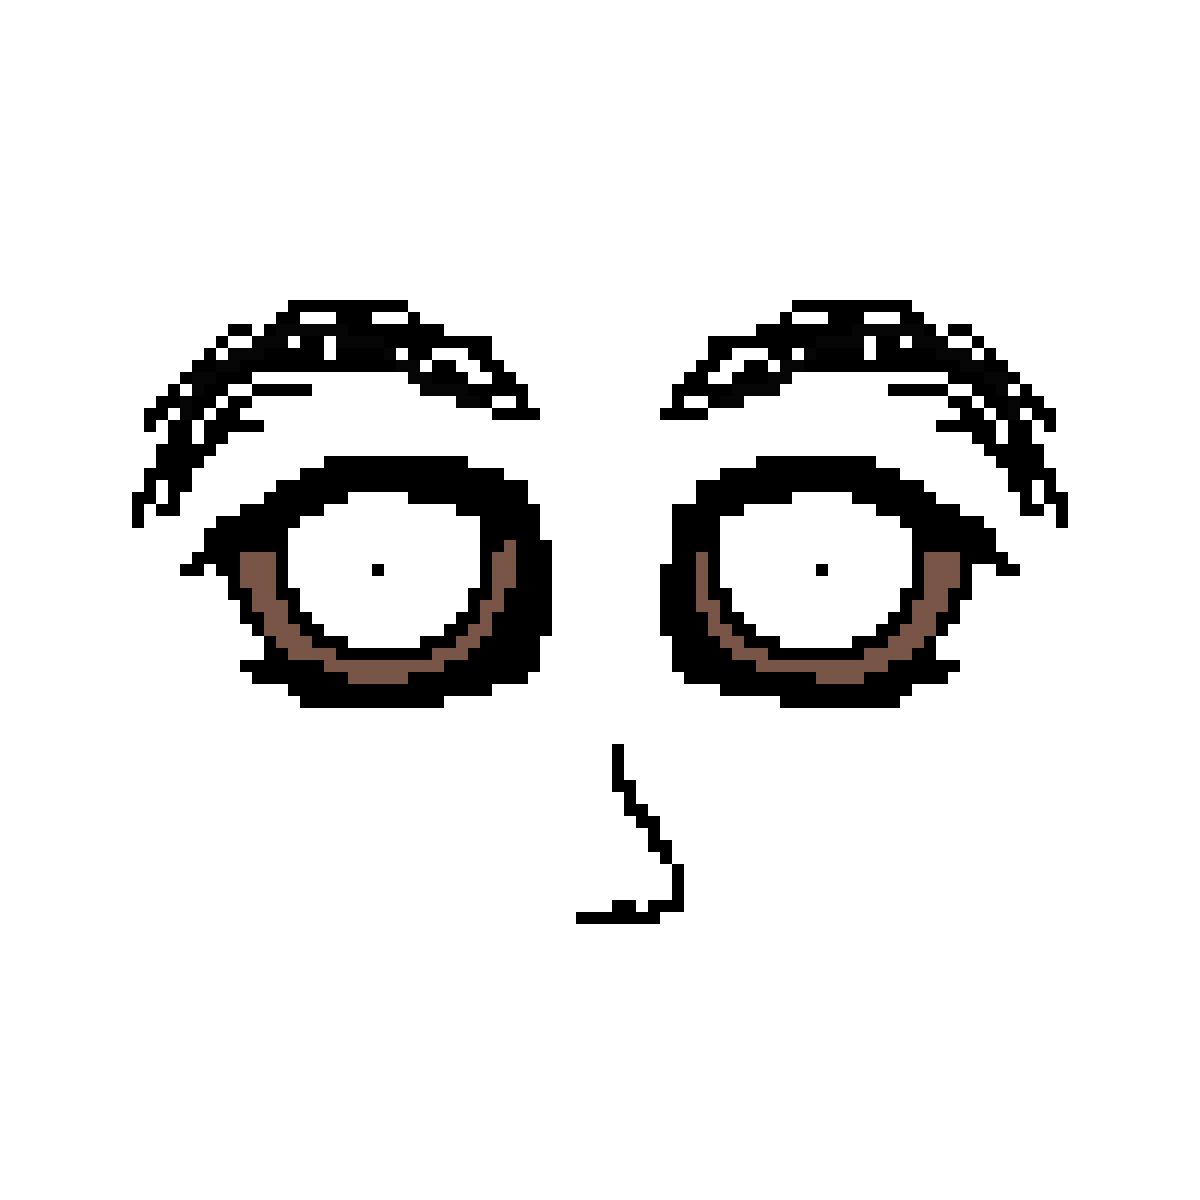 Creepy face png. Pixilart thingy by bean